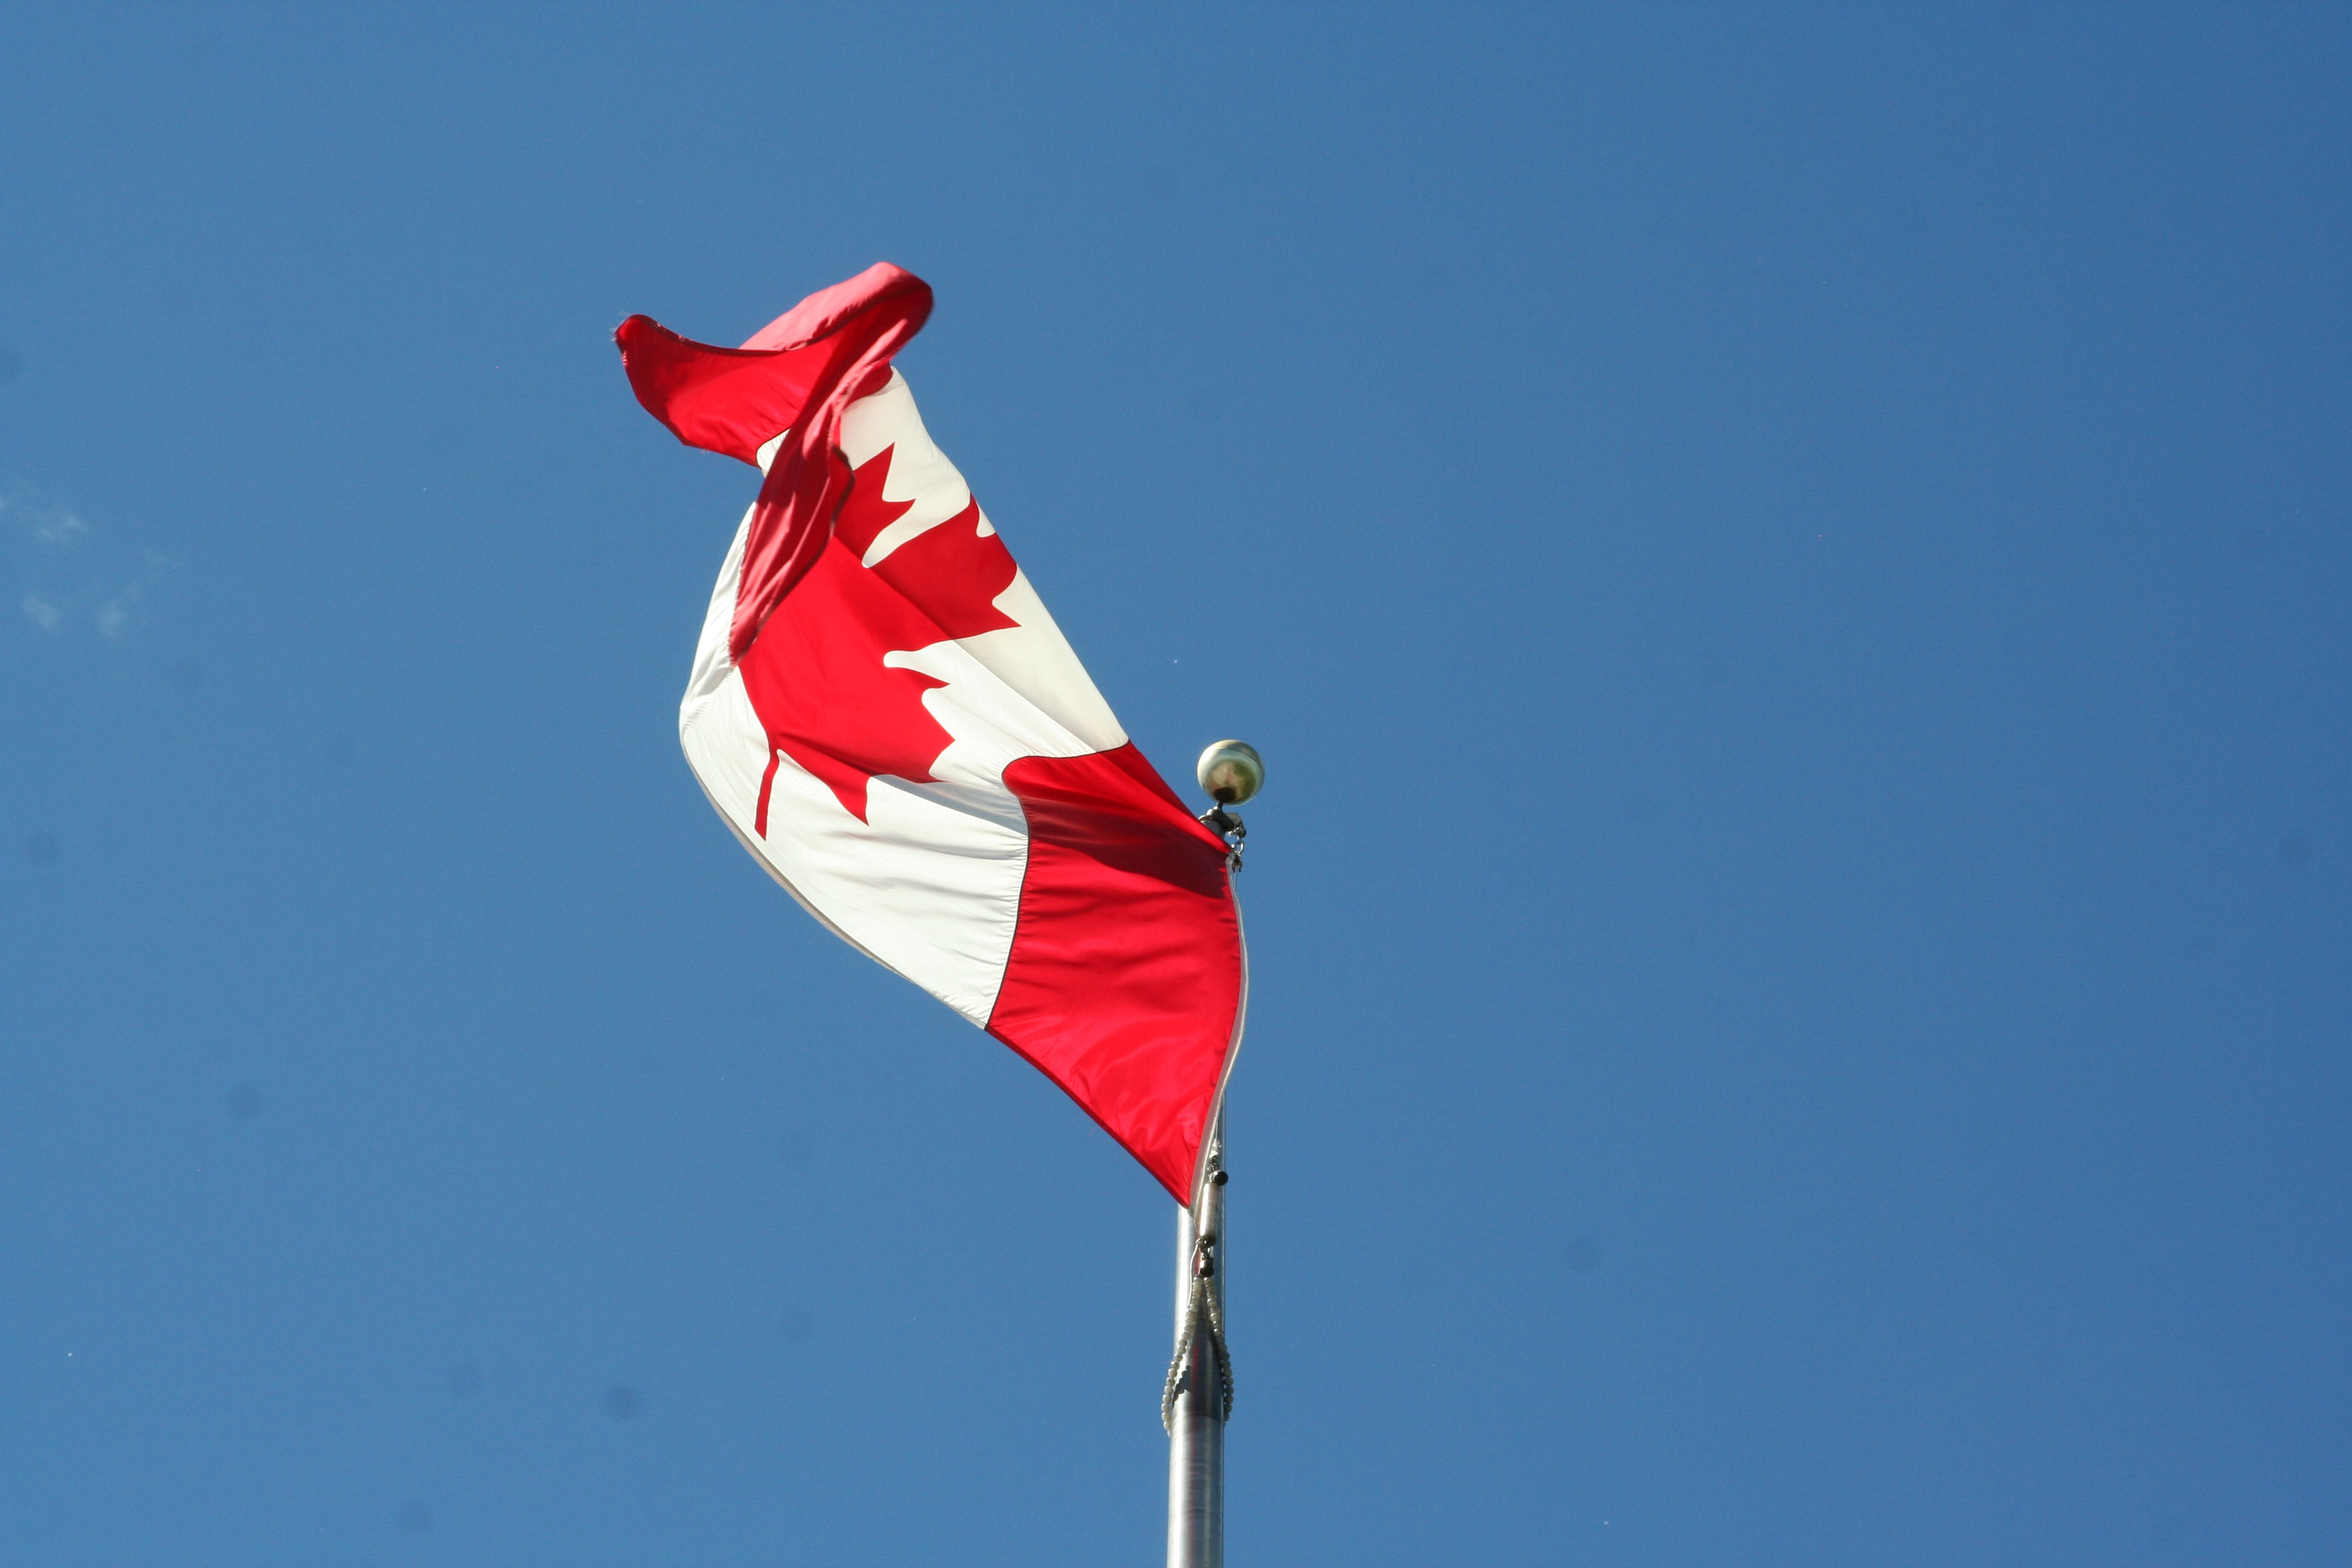 low angle photography of waving flag of Canada during daytime